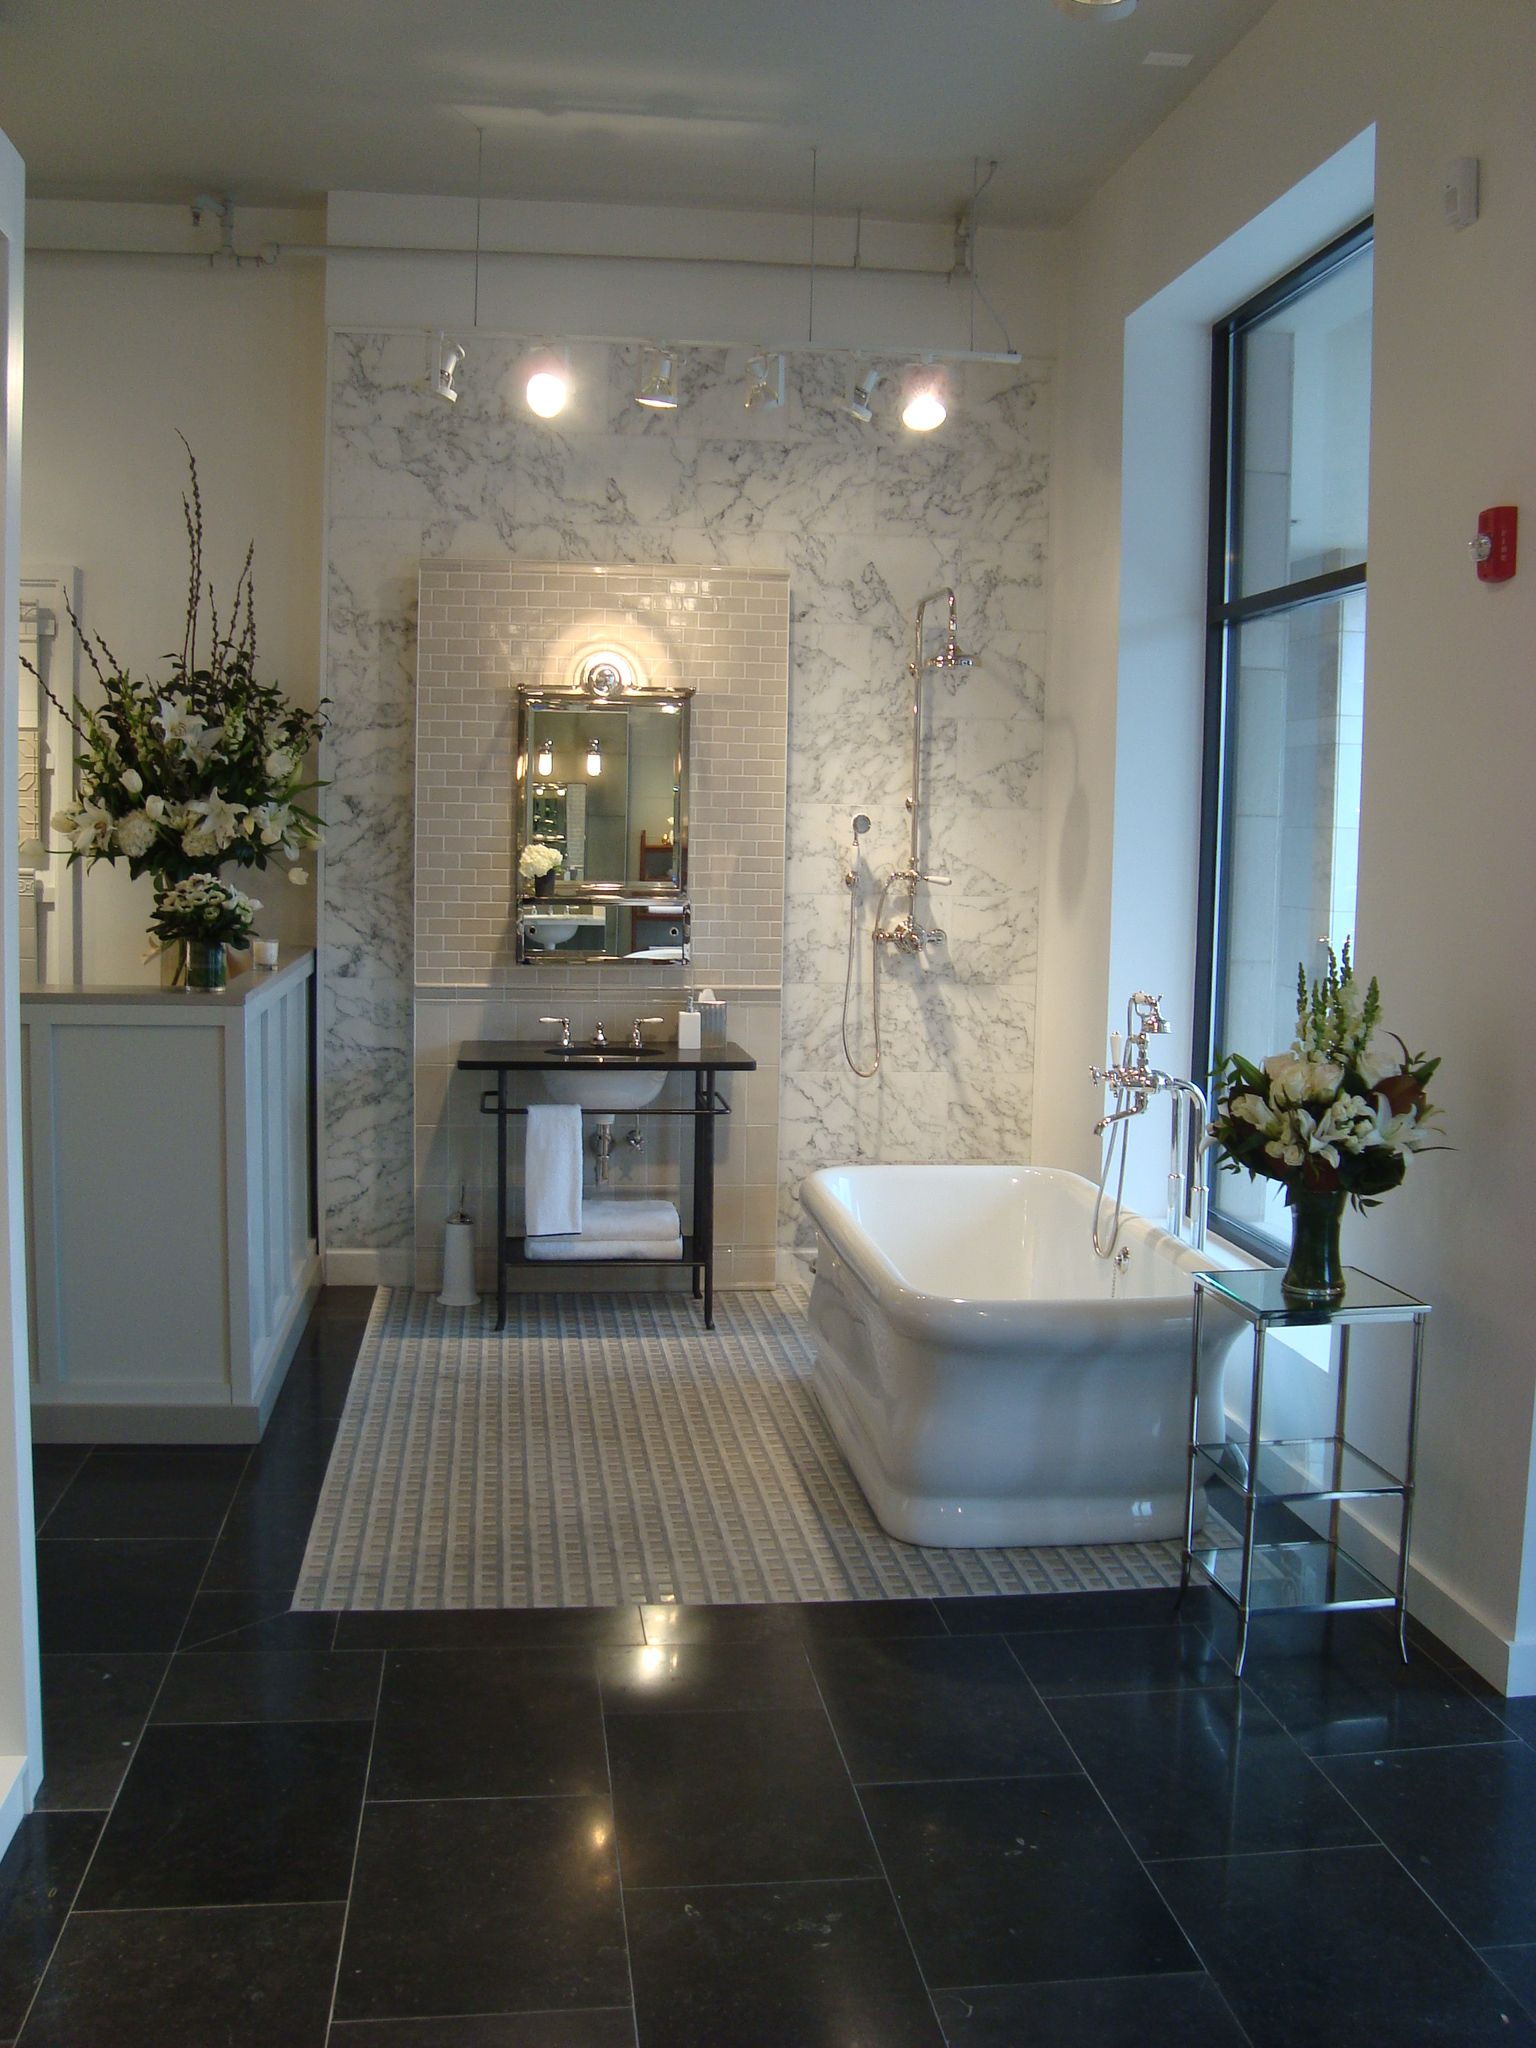 Denver Design District Showroom Bathroom Display Glass Bathroom